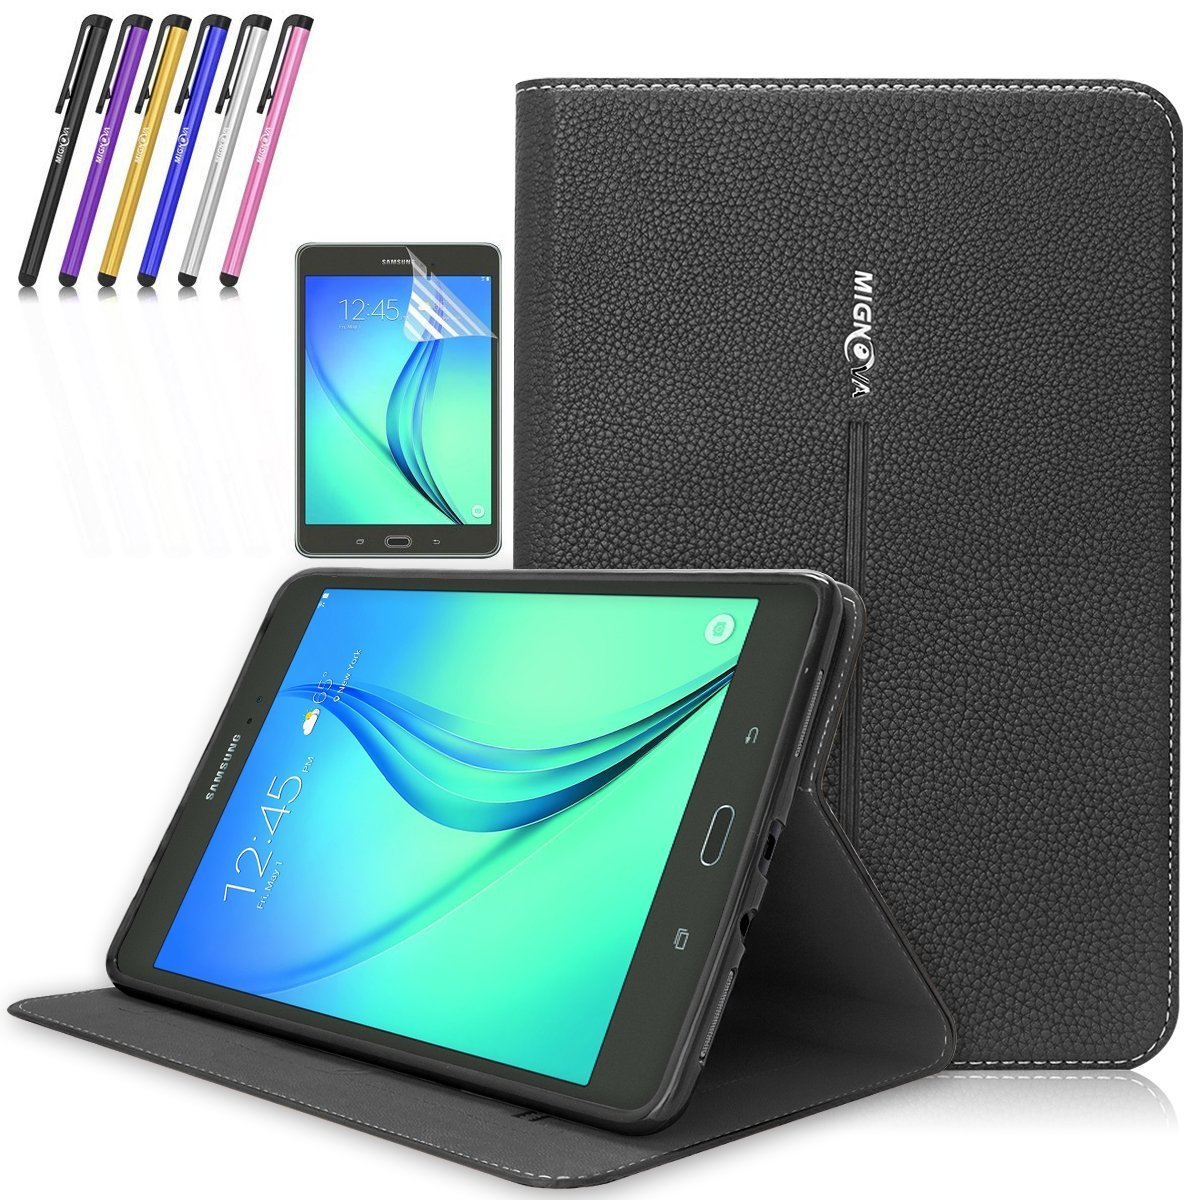 Galaxy Tab A 9.7 Case, Mignova Premium PU Leather Folio Case Smart Cover with Auto Sleep / Wake for Samsung Galaxy Tab A 9.7 Inch SM-T550 SM-P550 + Screen Protector Film and Stylus Pen (Black)